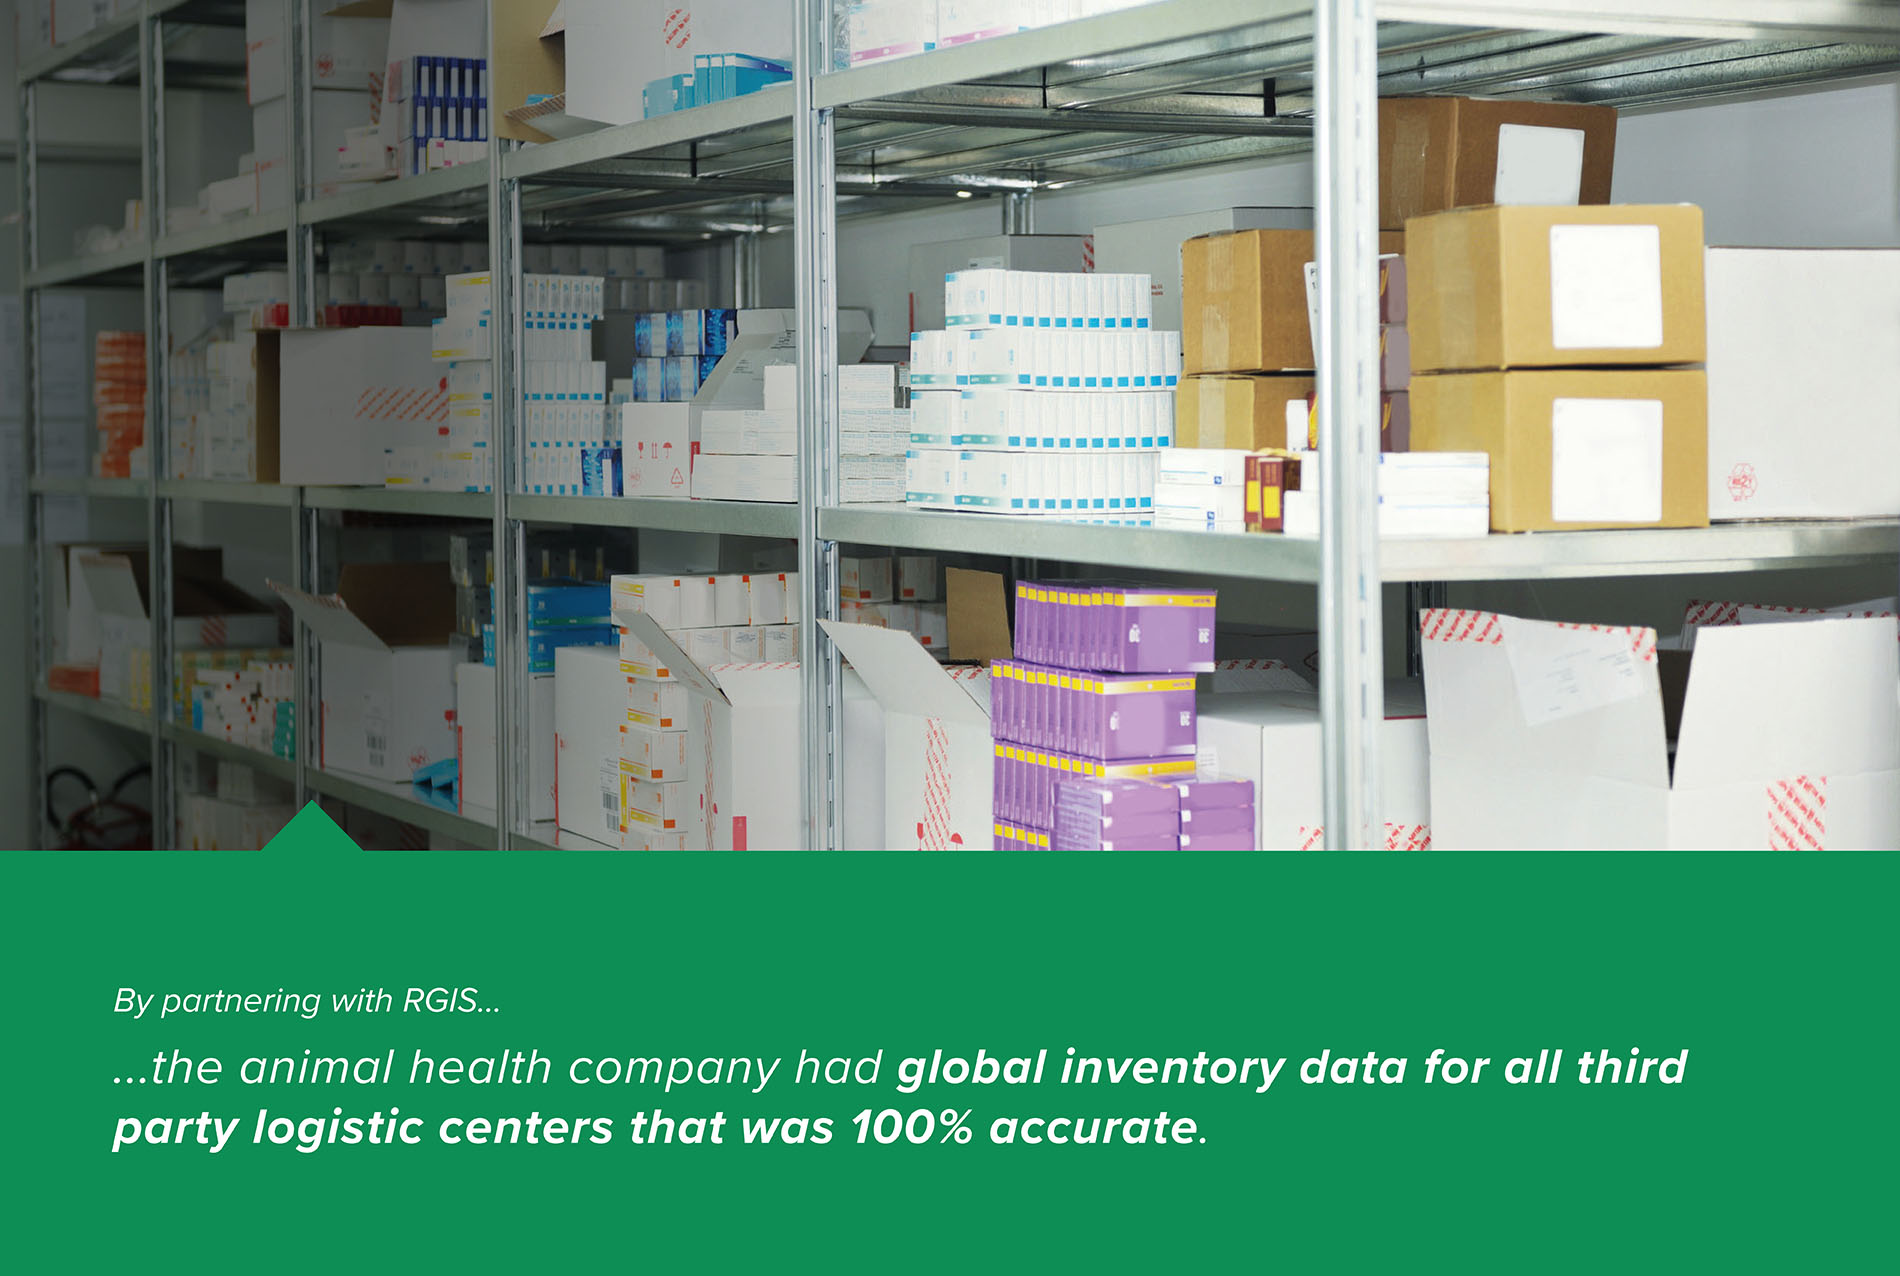 Global Third Party Logistic Center Counts